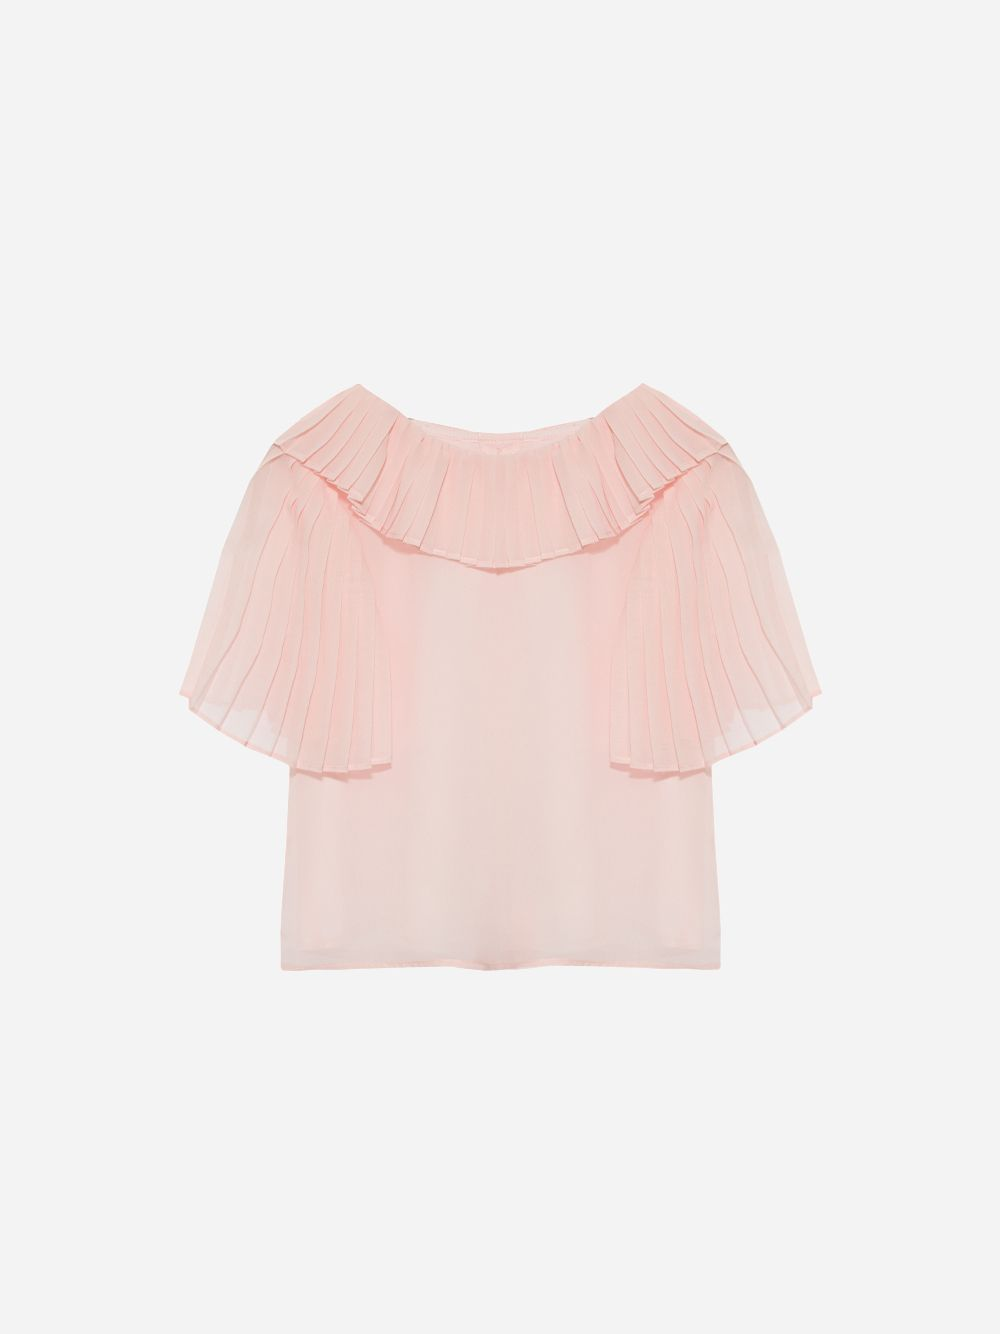 Patachou Chiffon Pale Pink Blouse